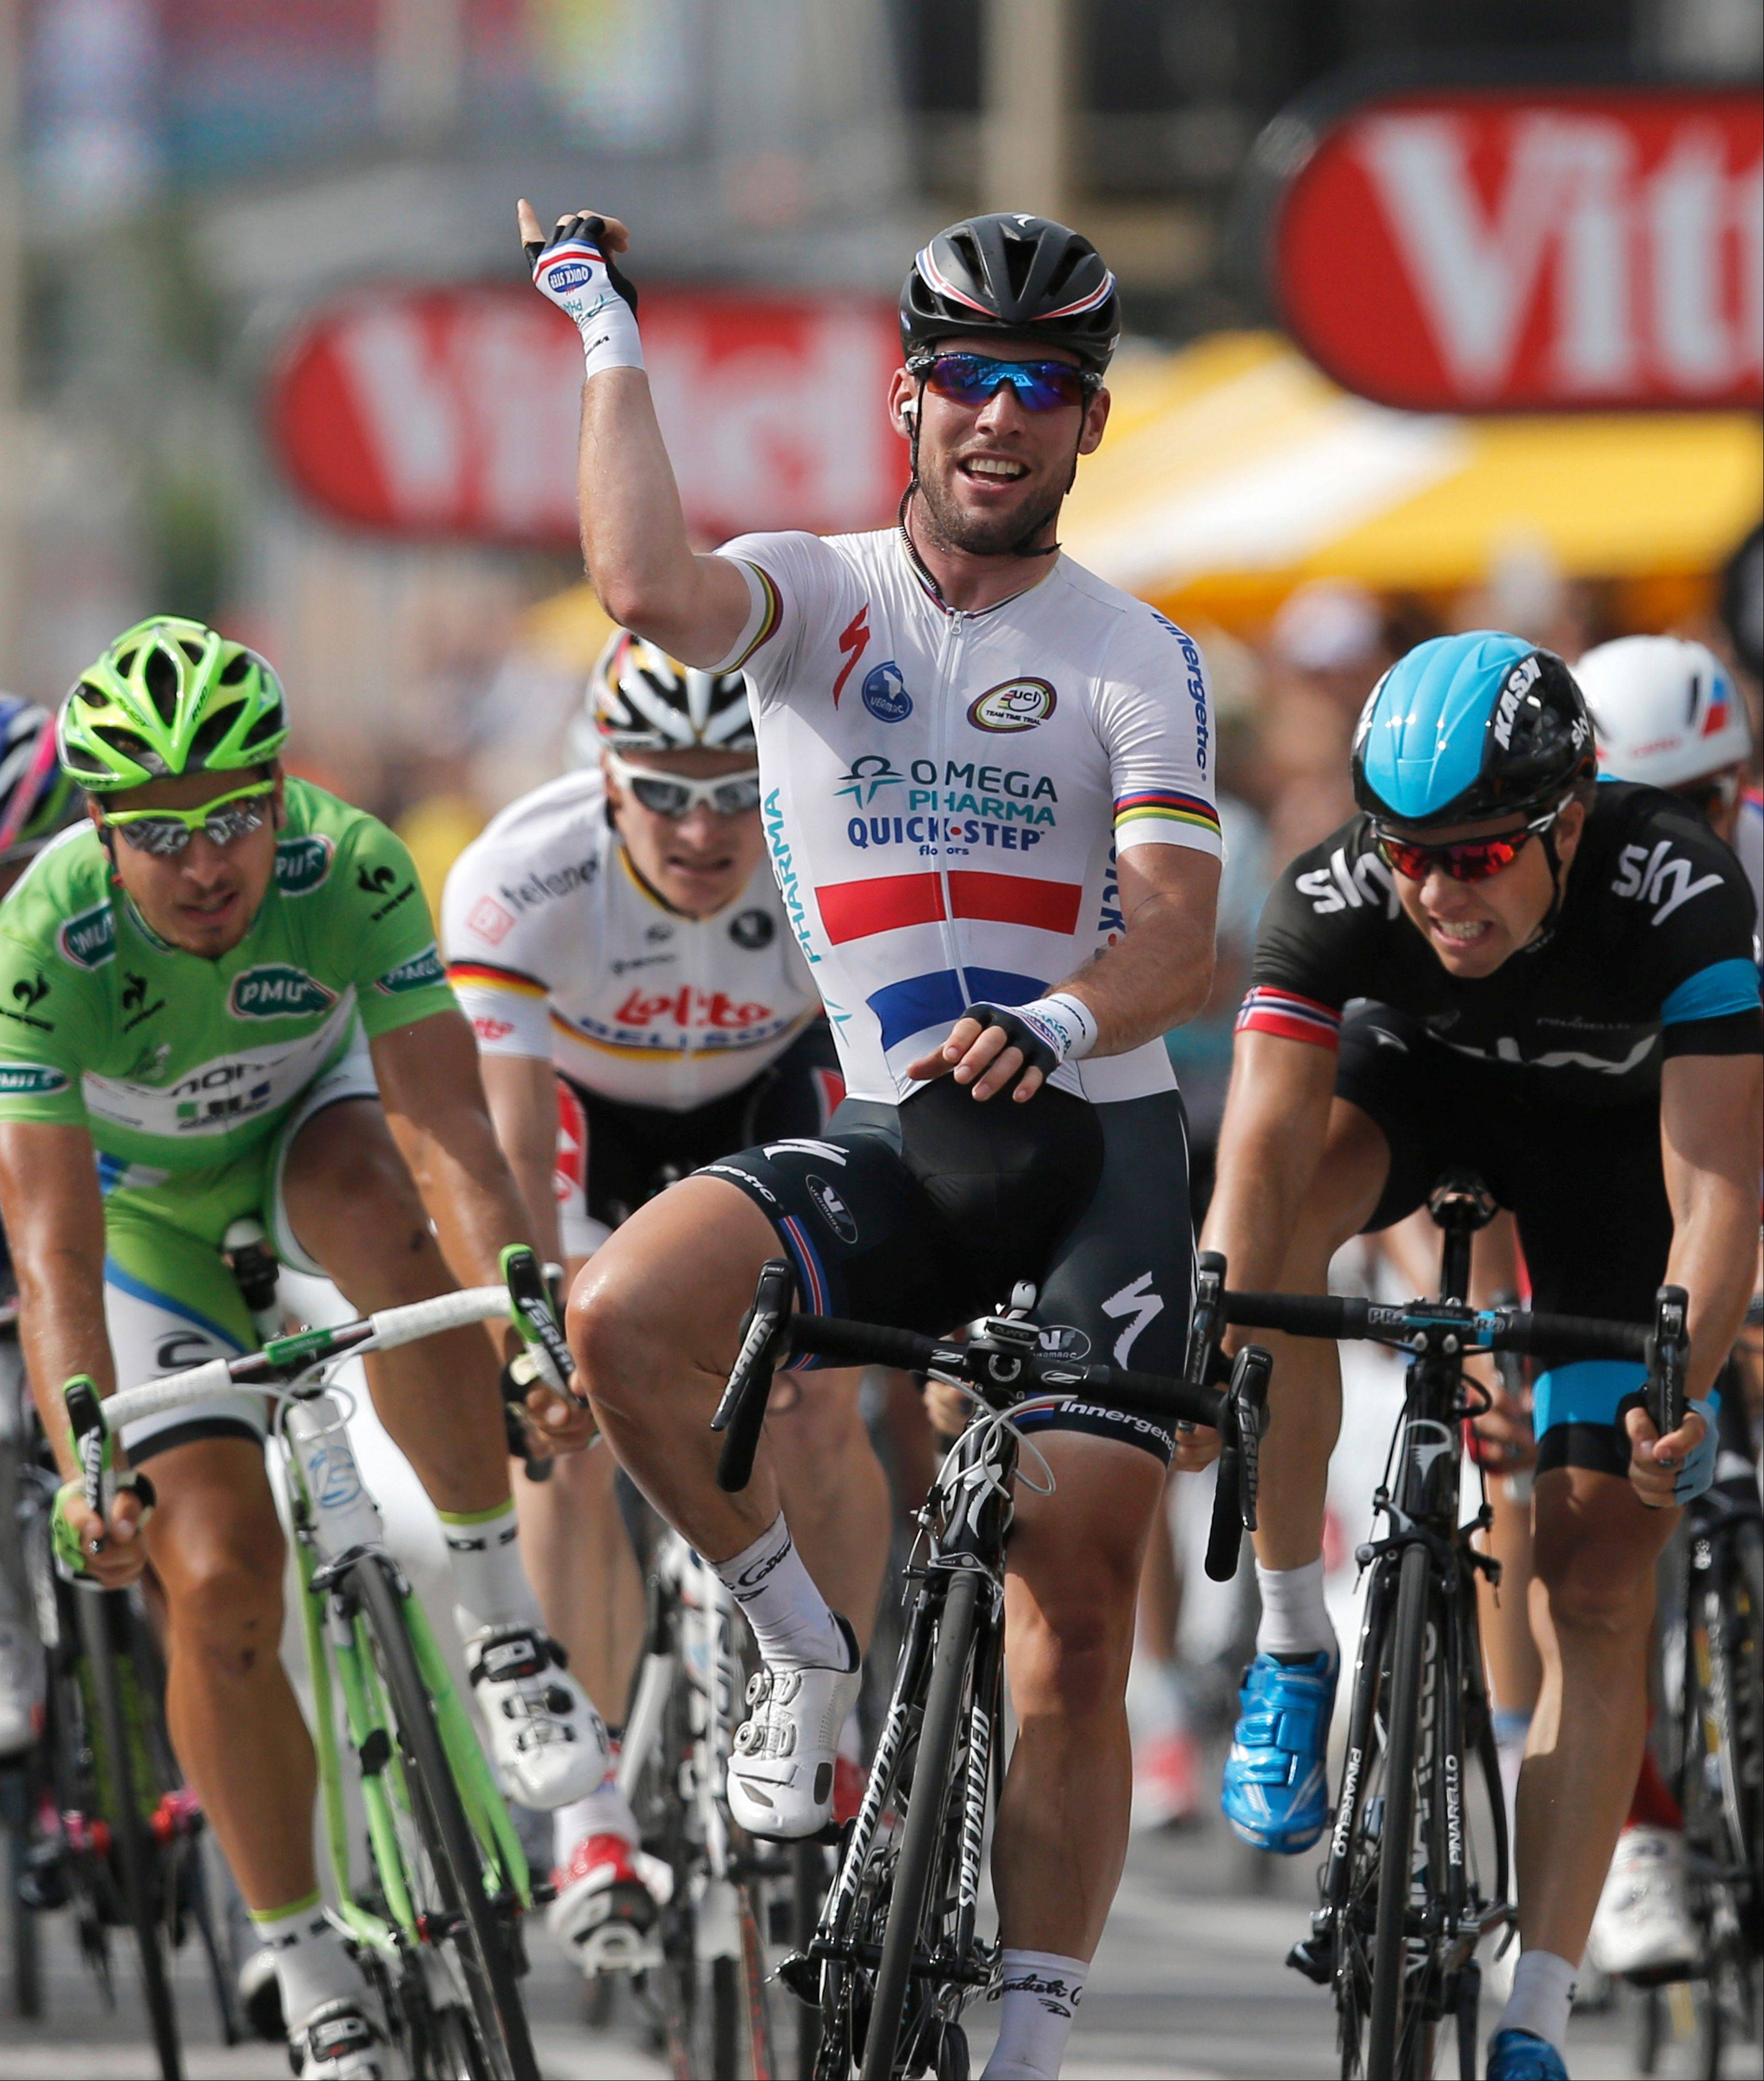 Britain's Marc Cavendish crosses the finish line ahead of Edvald Boasson Hagen of Norway, Peter Sagan of Slovakia and Andre Greipel of Germany to win the fifth stage of the Tour de France on Wednesday in Marseille.